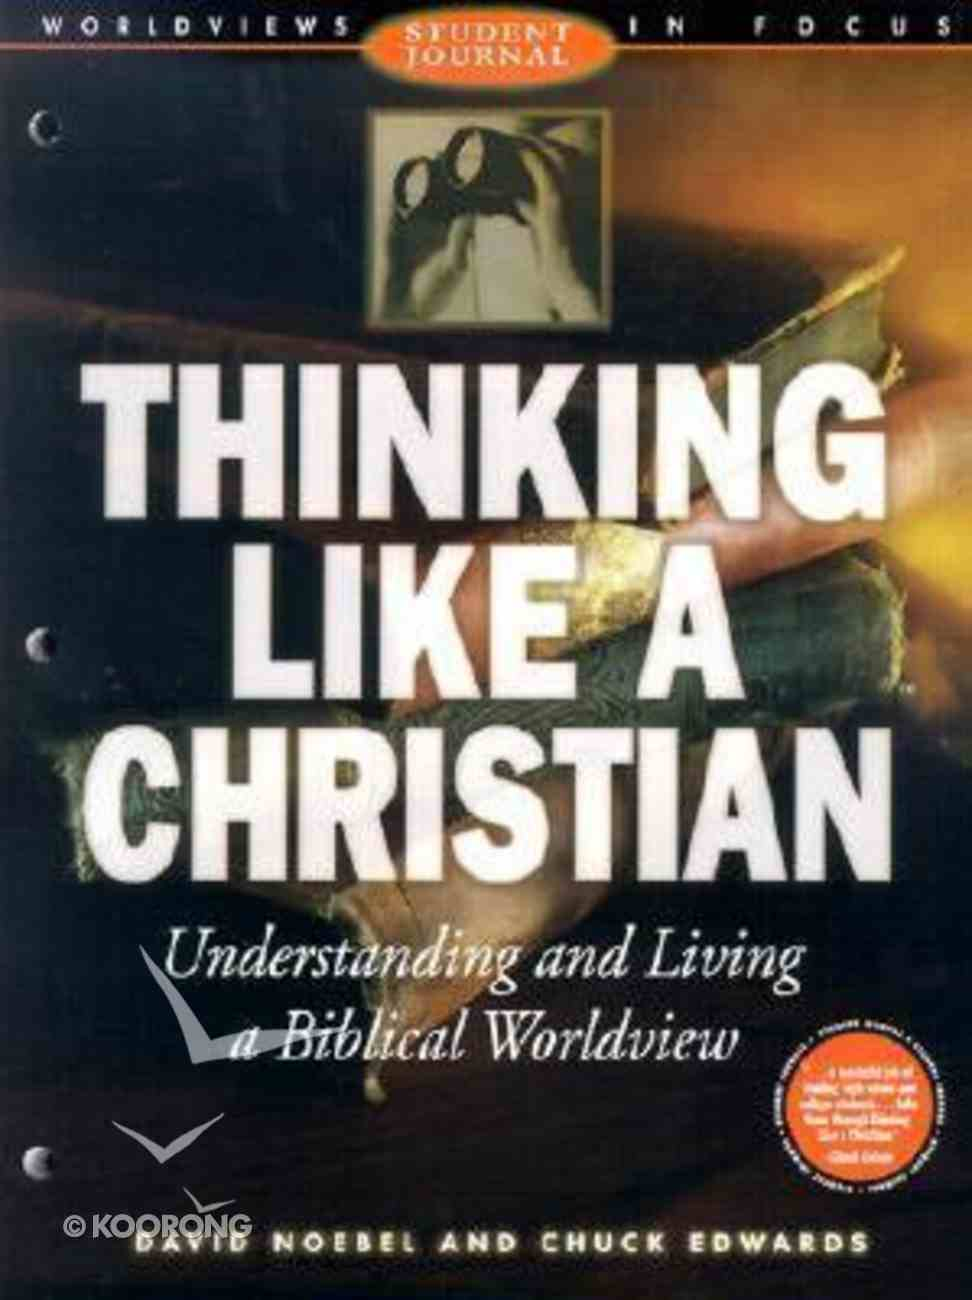 Thinking Like a Christian (Student Journal) Paperback